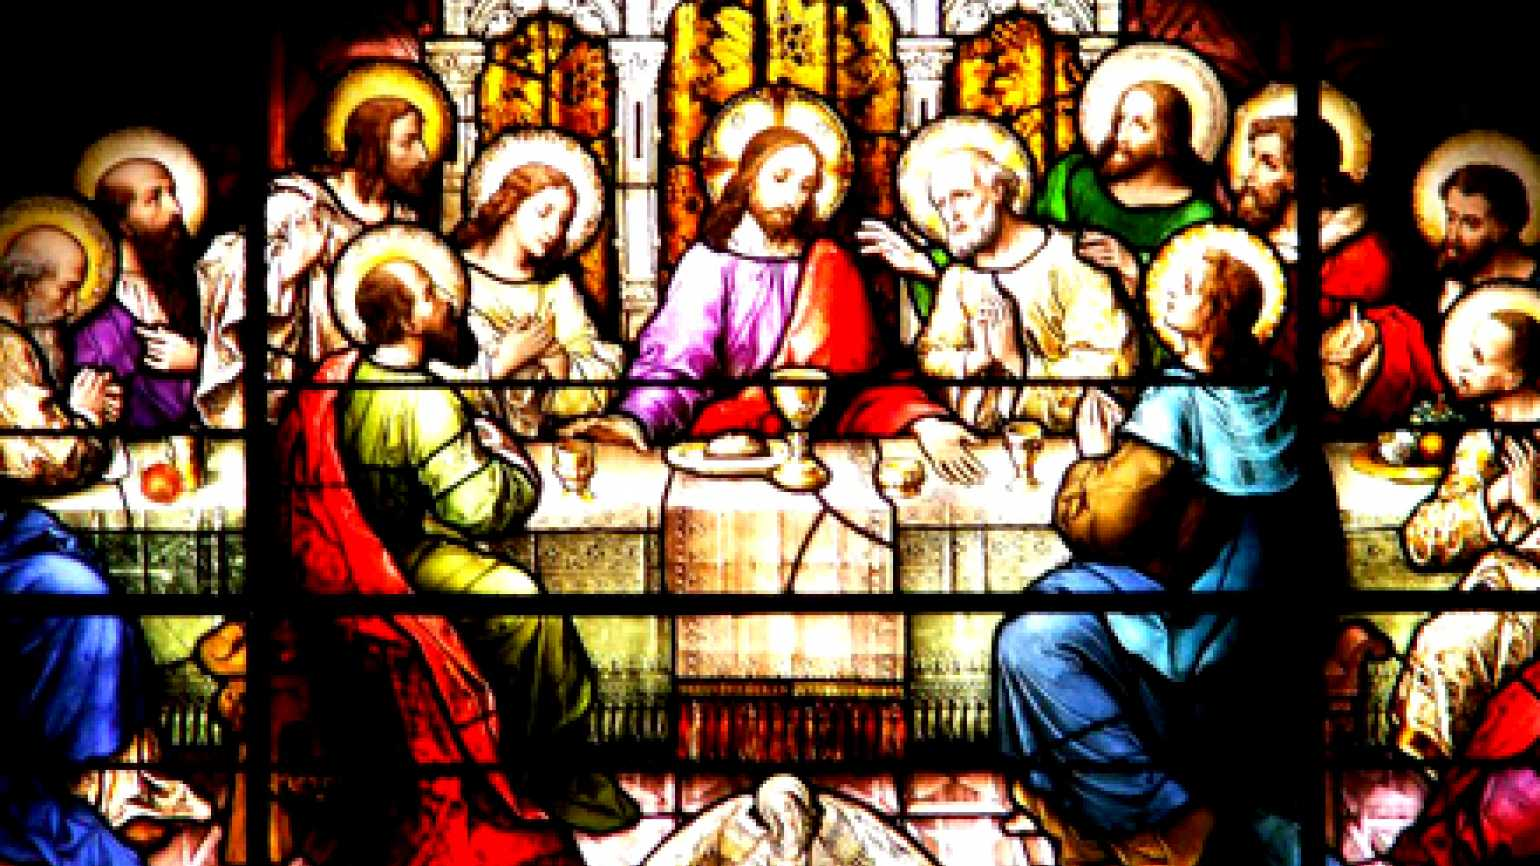 An illuminated stained-glass window showing the Last Supper